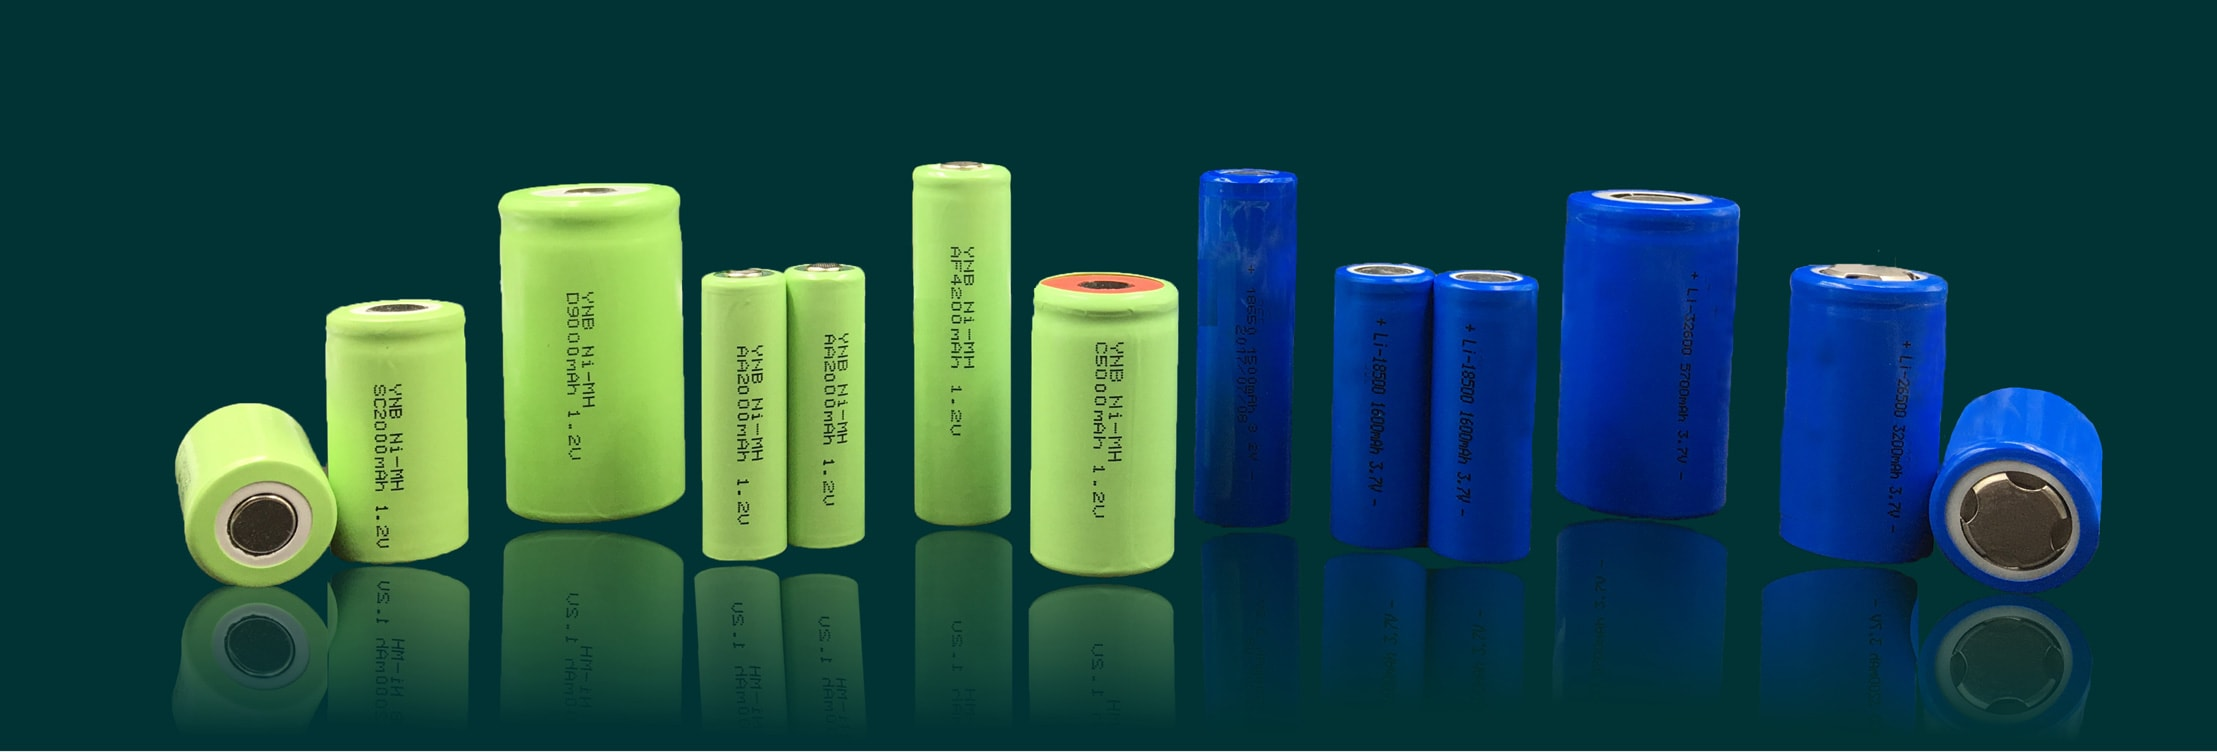 YUNERGY BATTERY CO.,LTD